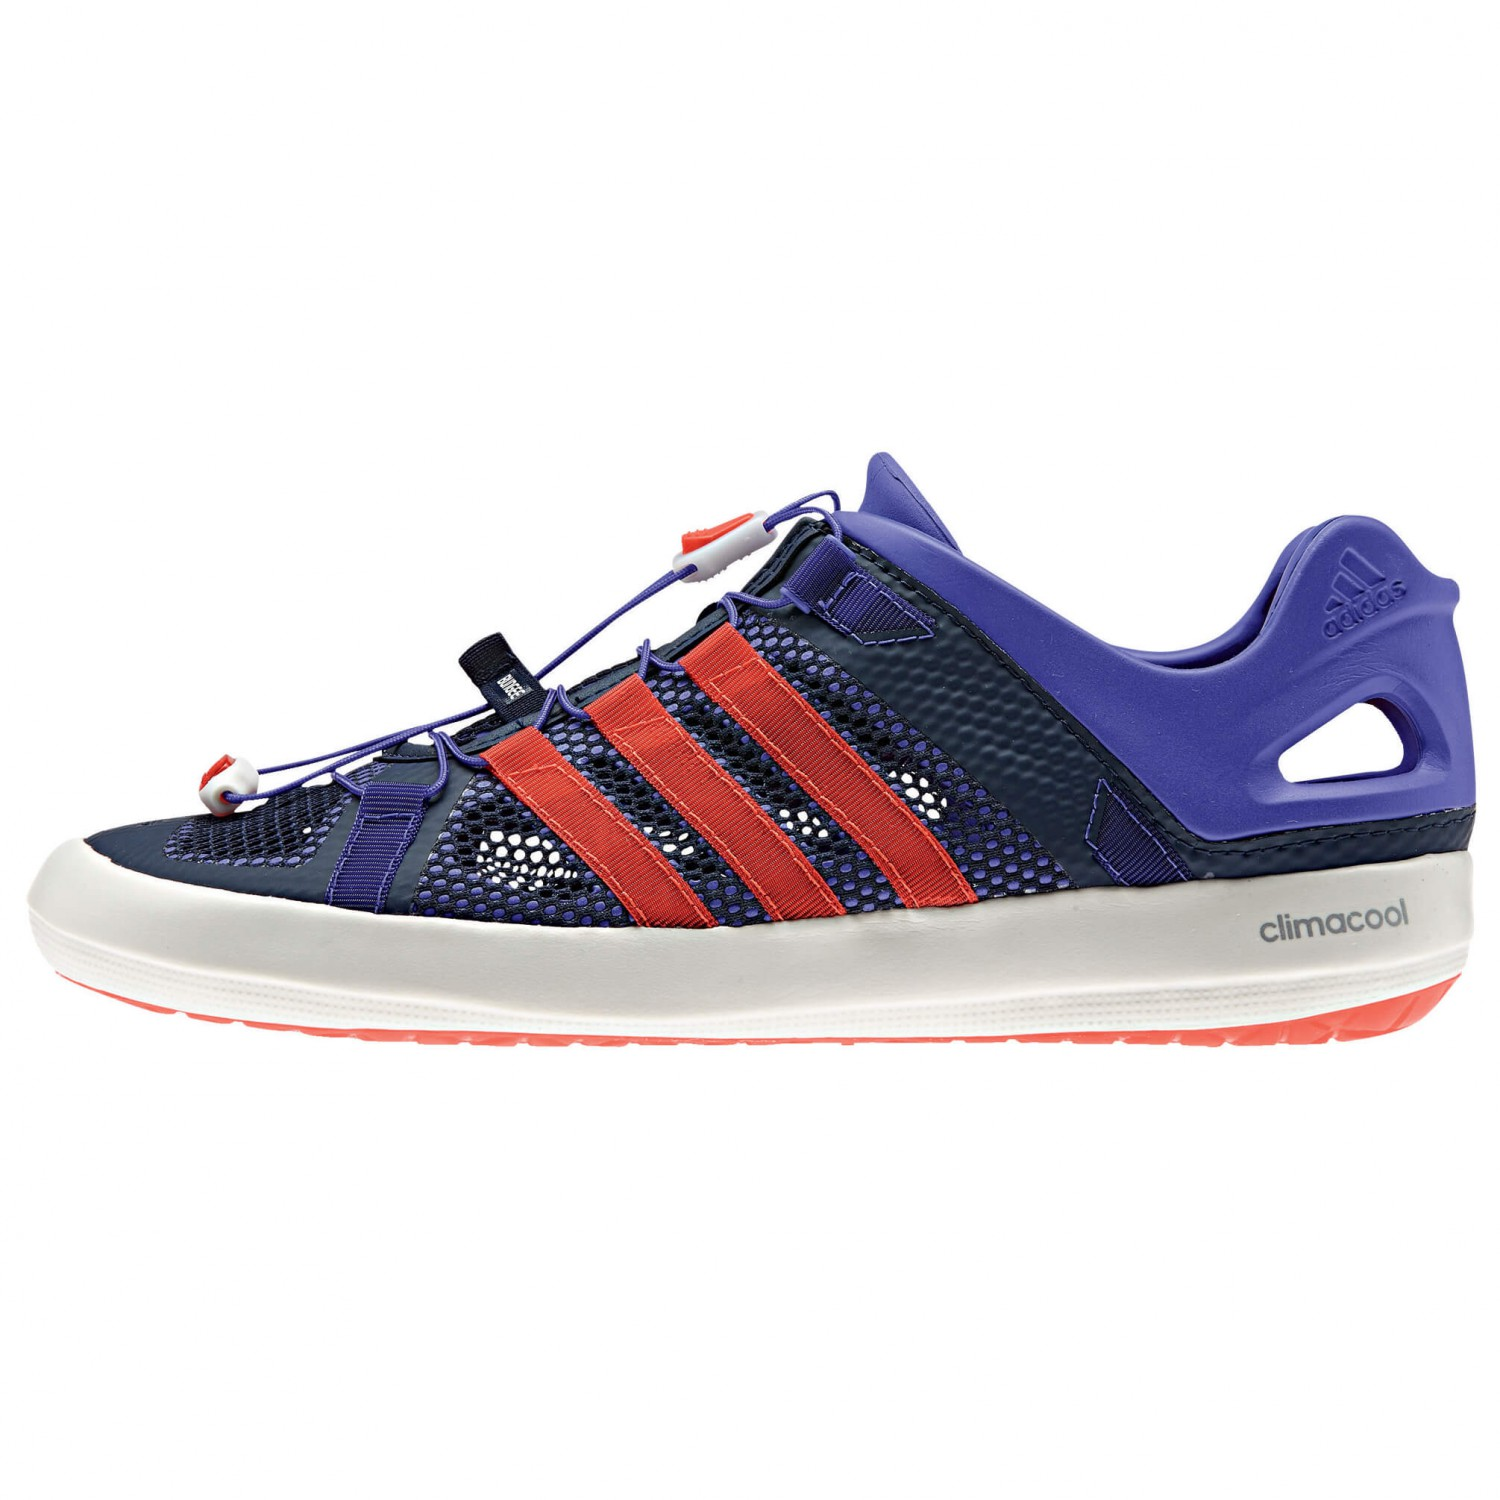 baskets pour pas cher 24acf 3c033 Adidas Climacool Boat Breeze - Water Shoes Men's | Buy ...